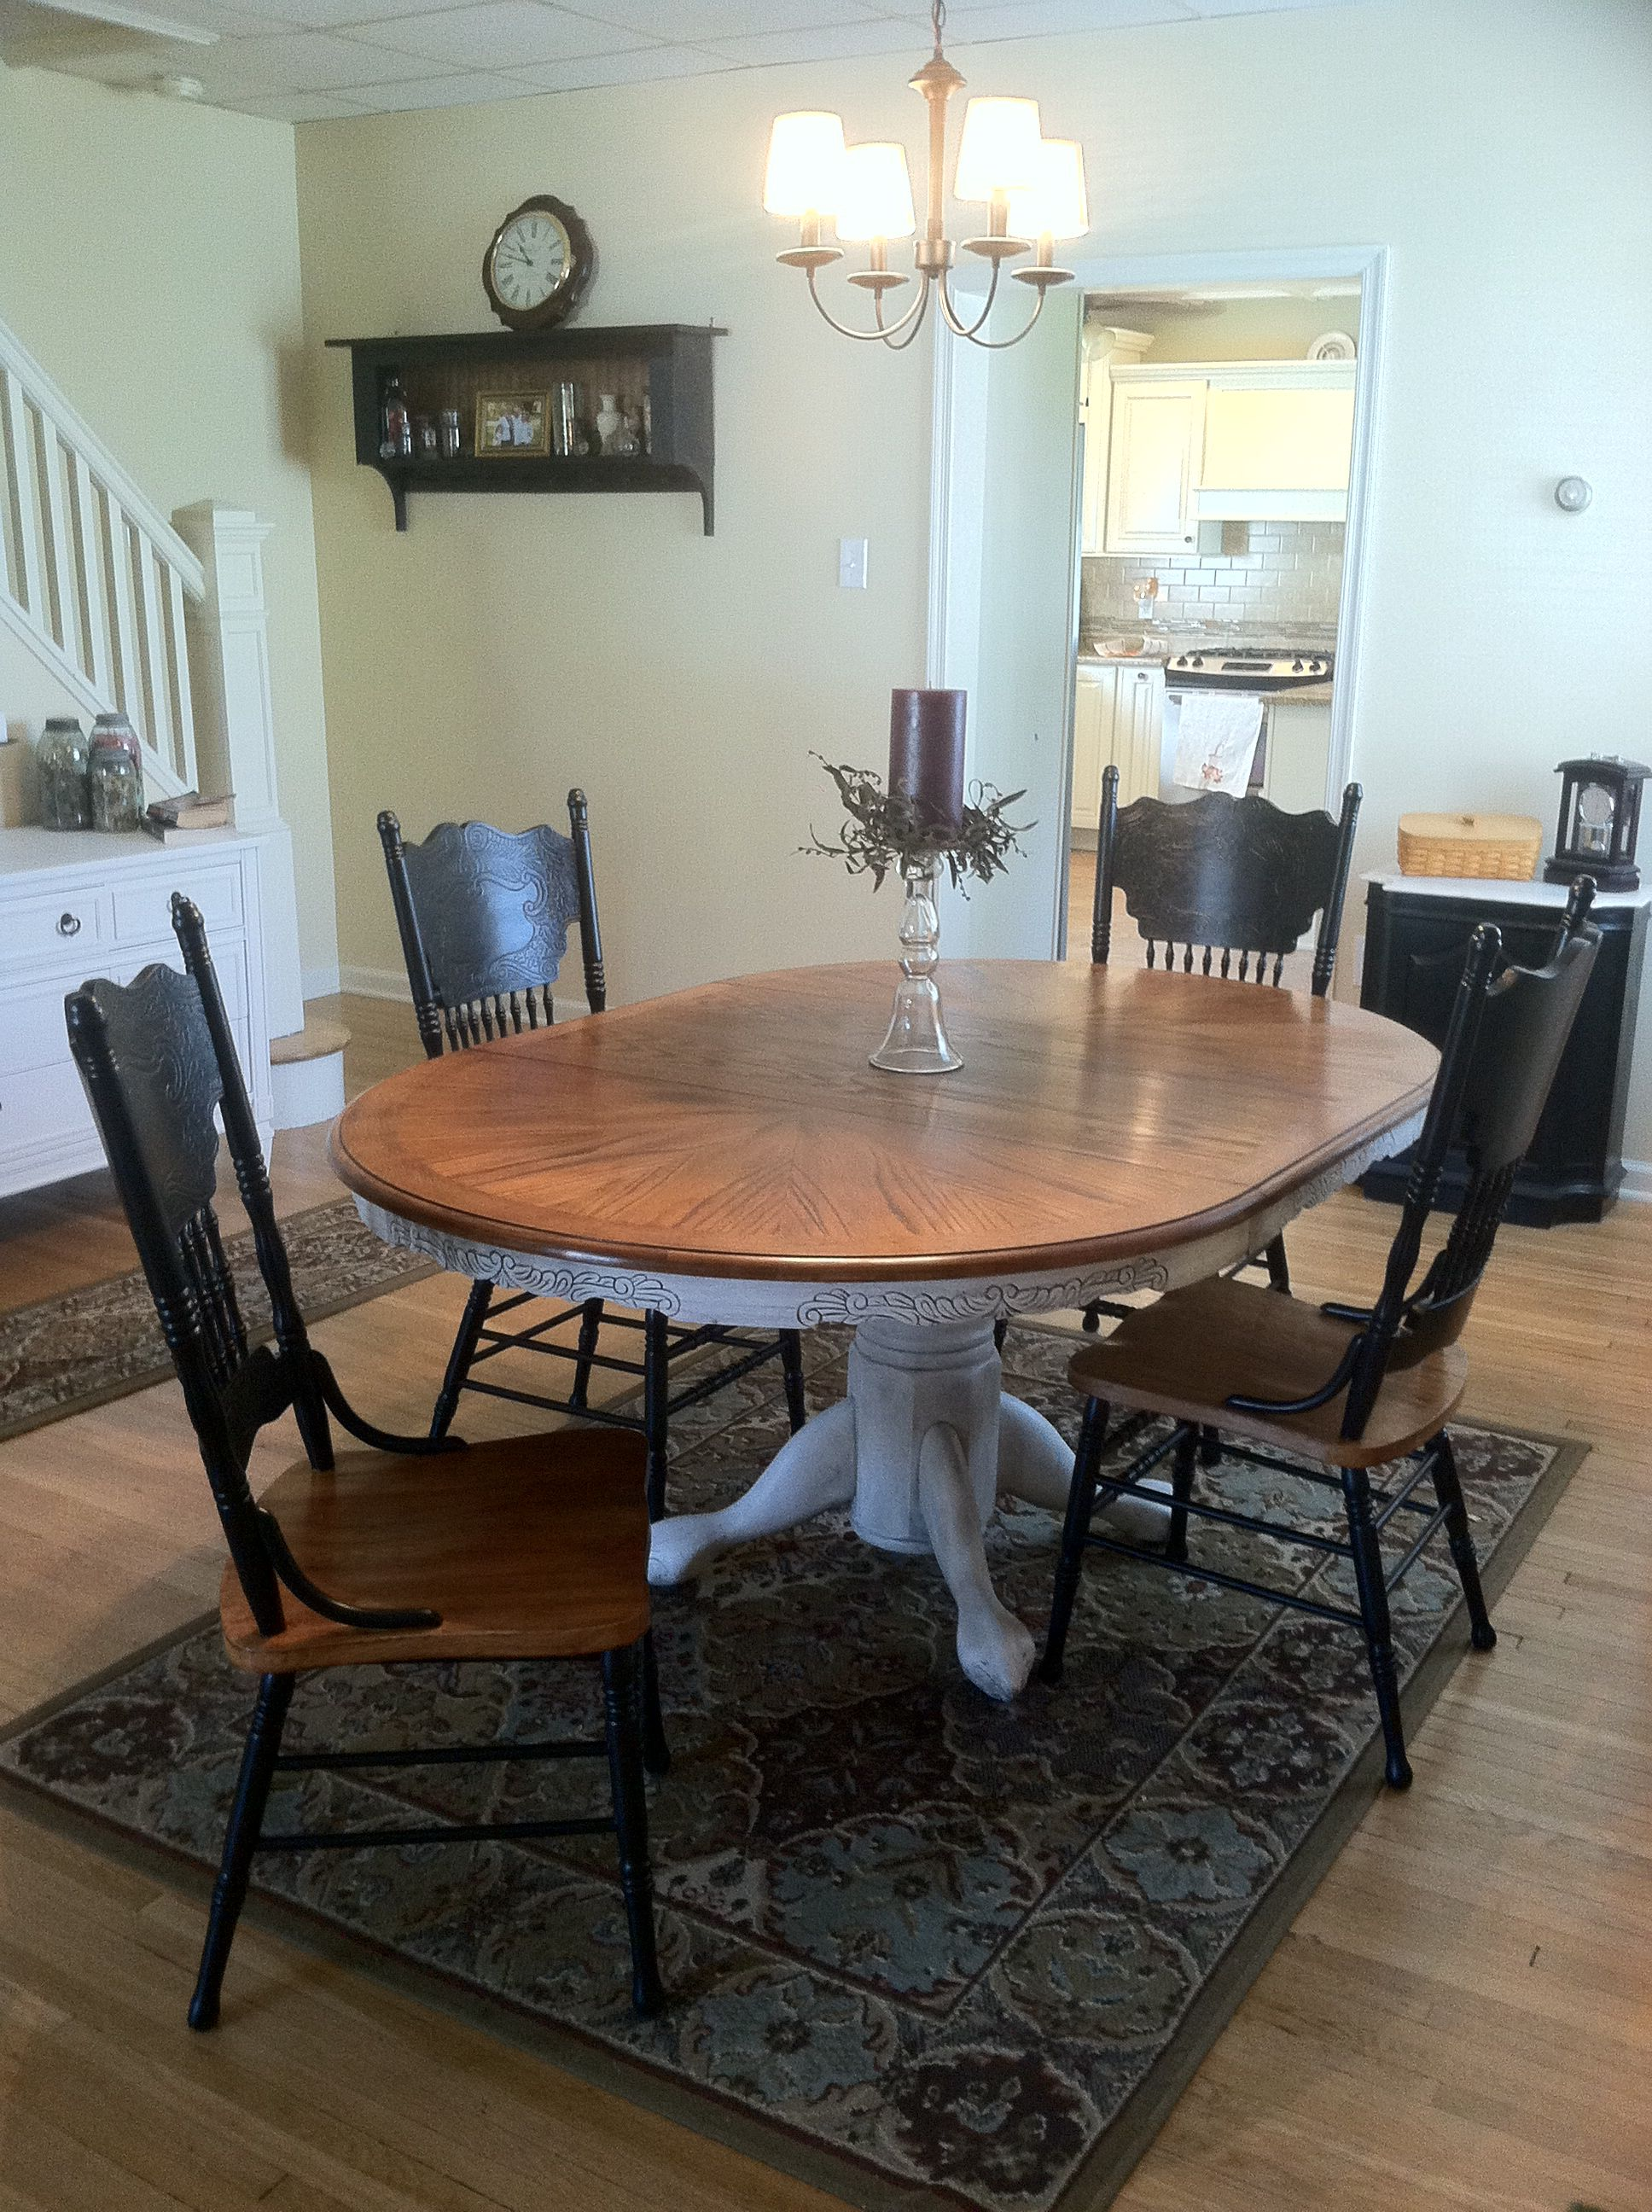 Pressback table and chairs redo. Originally a light oak set from the 90's…